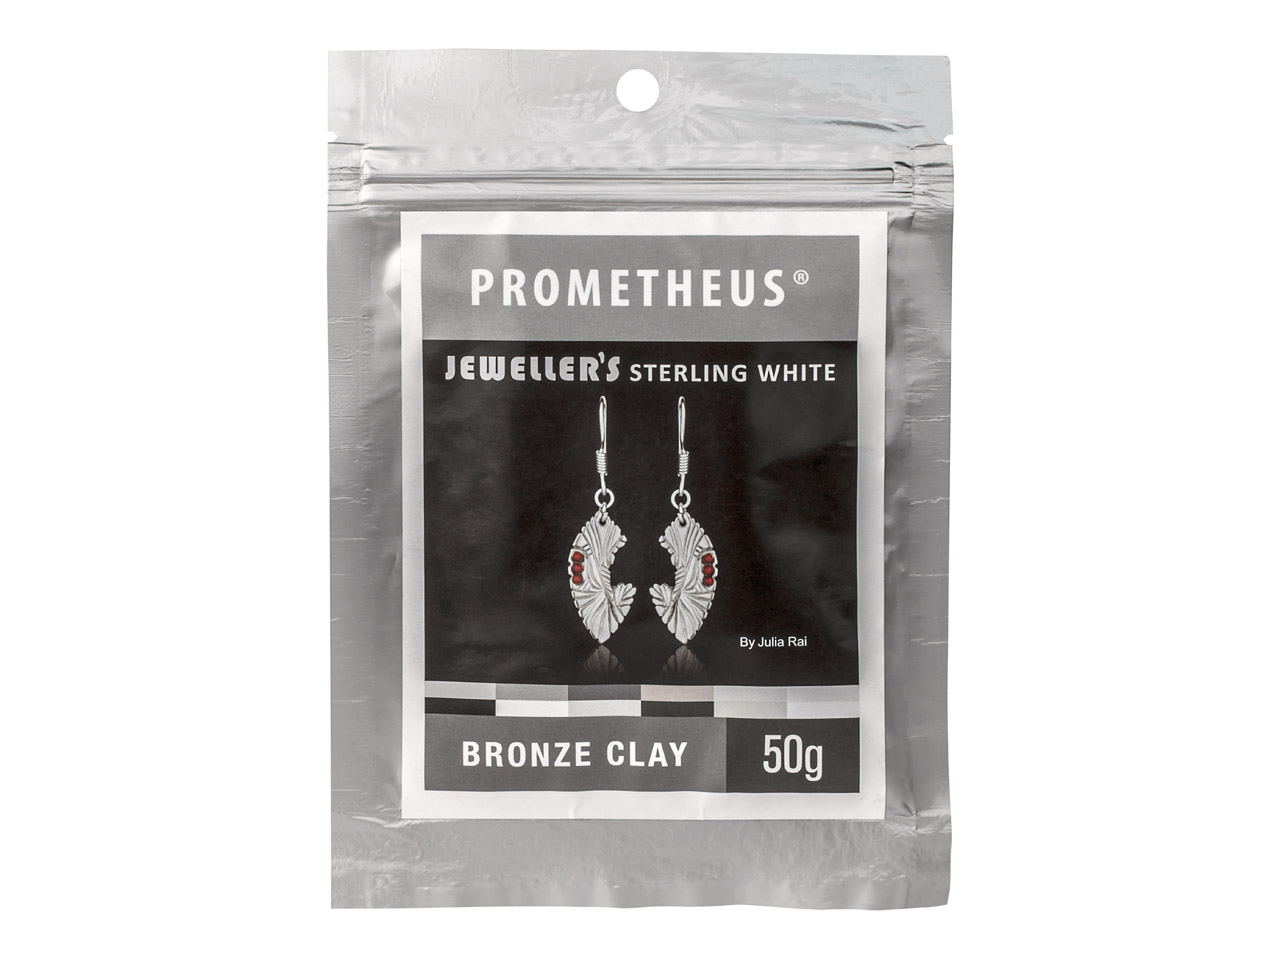 Prometheus Jewellers Sterling White Bronze Clay 50g